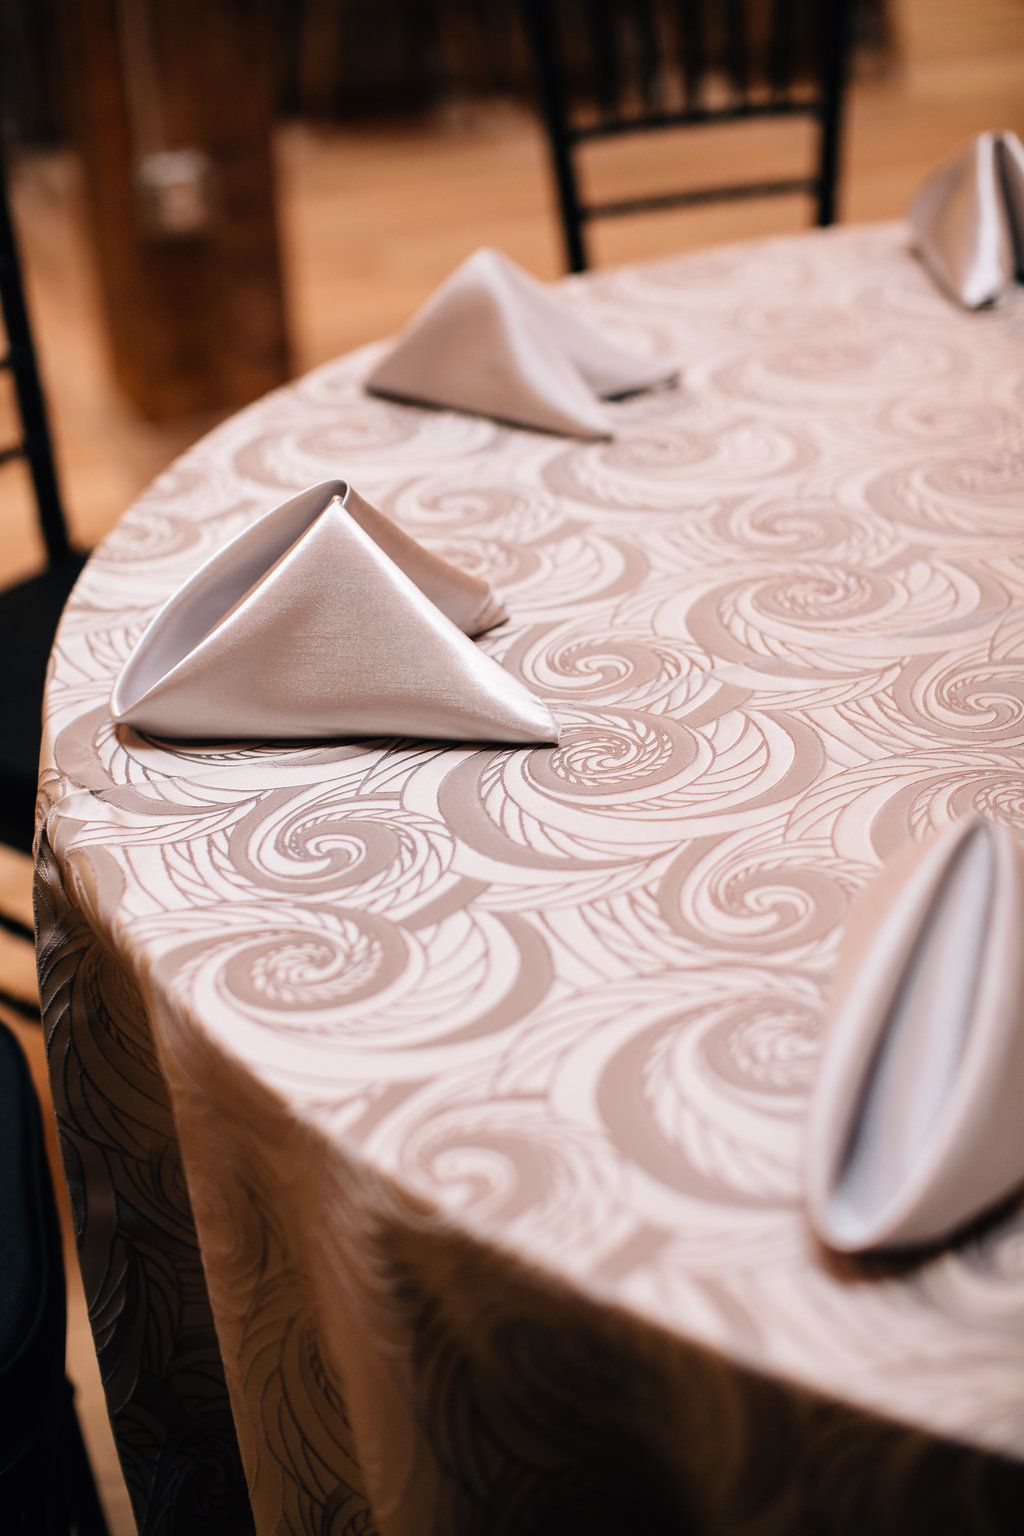 Fog Nautilus linen and Silver Shantung napkins by Creative Coverings on